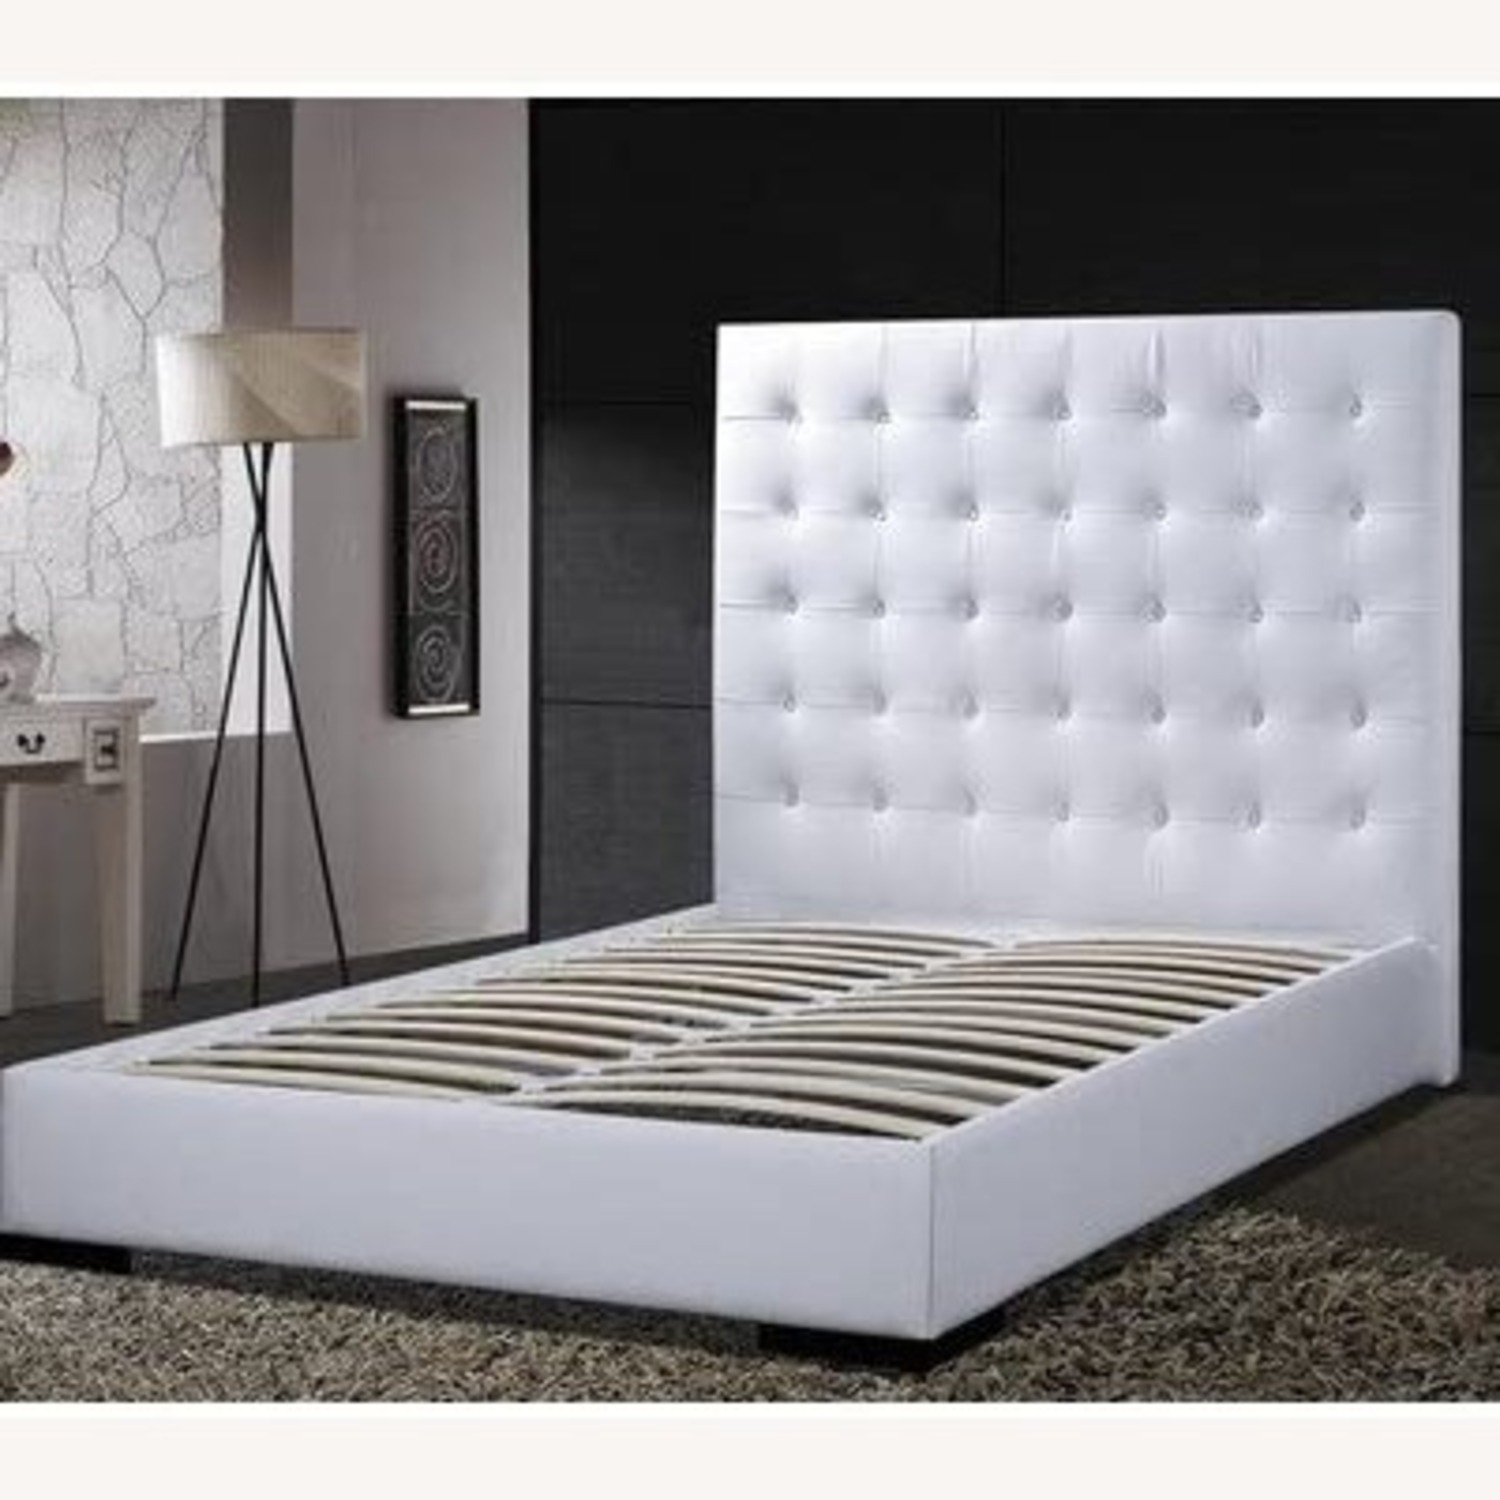 DG White Leather King Bed - image-2